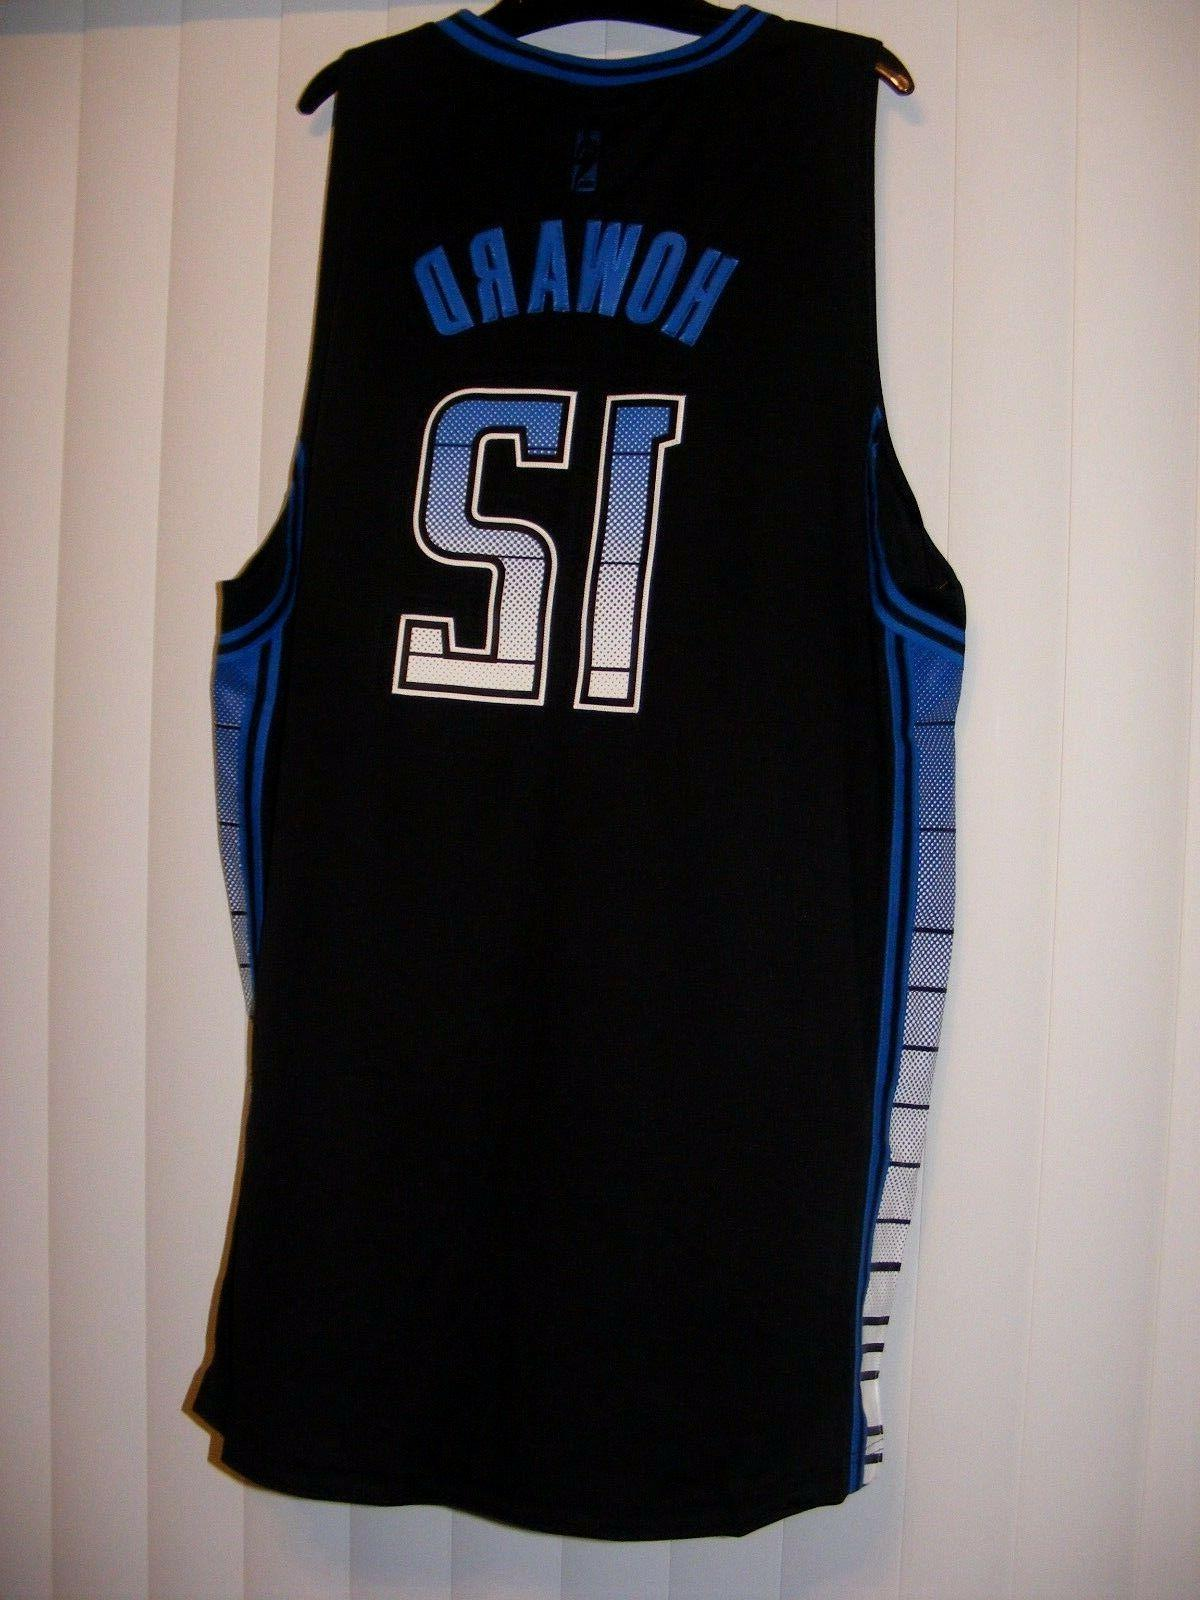 Orlando Magic Stitched Adidas NBA Basketball XL~NEW~$95